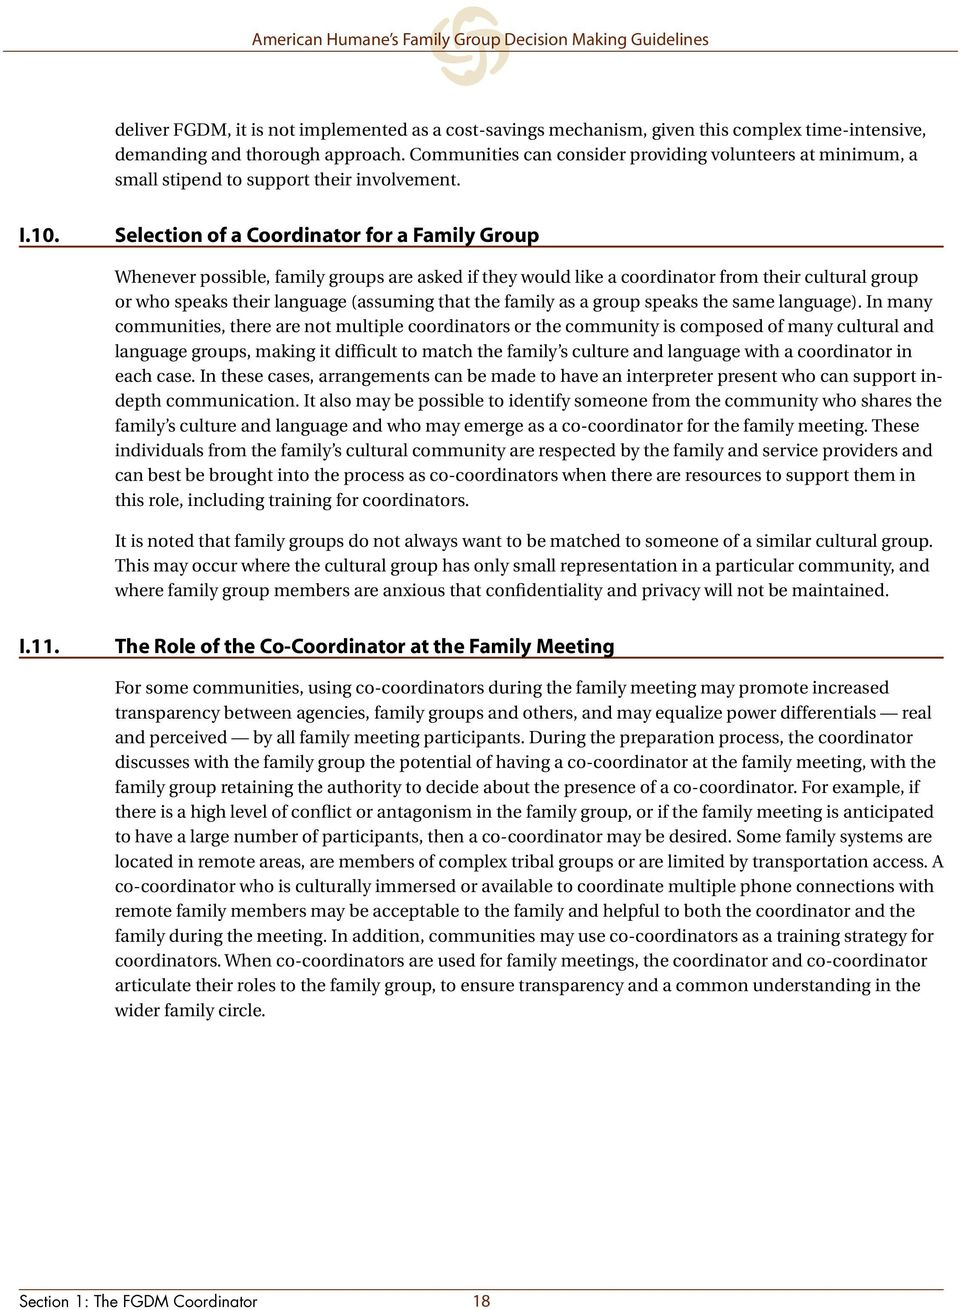 Selection of a Coordinator for a Family Group Whenever possible, family groups are asked if they would like a coordinator from their cultural group or who speaks their language (assuming that the